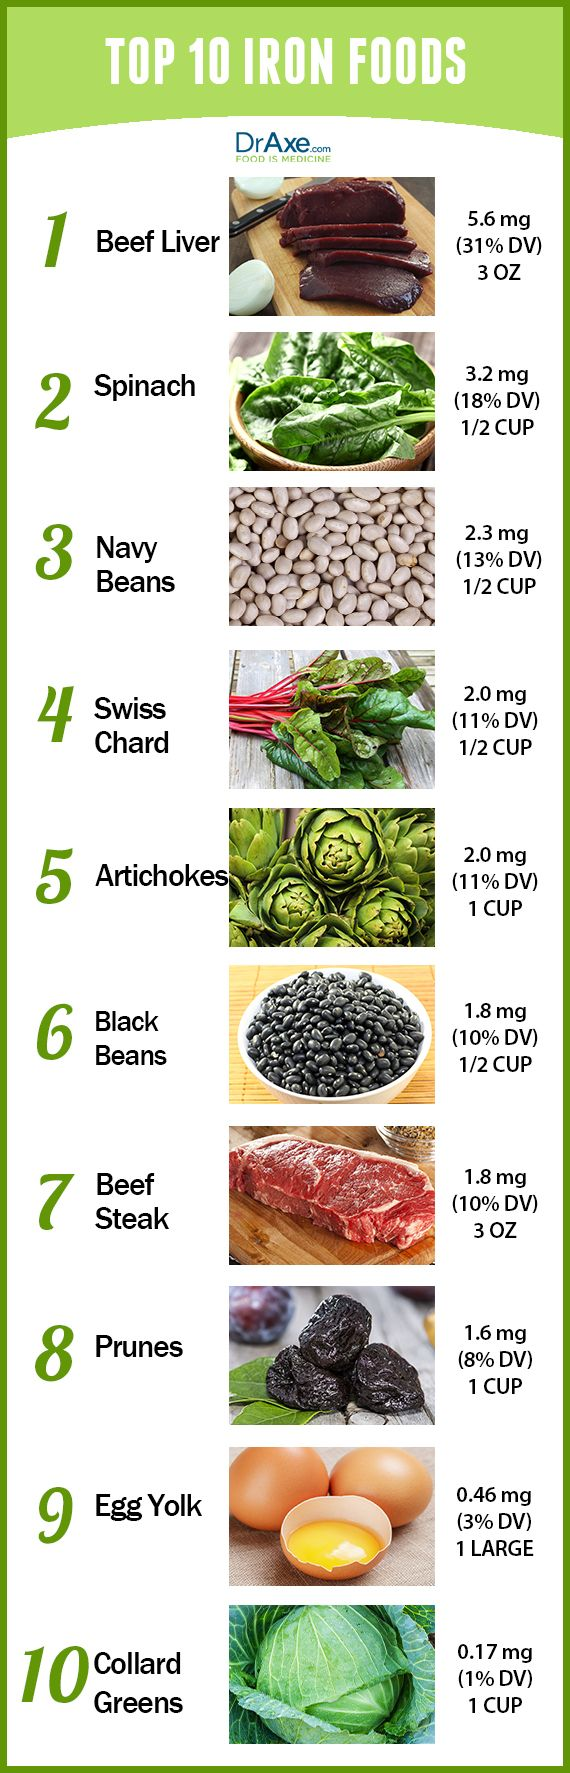 Top 15 IronRich Foods, Intake and Key